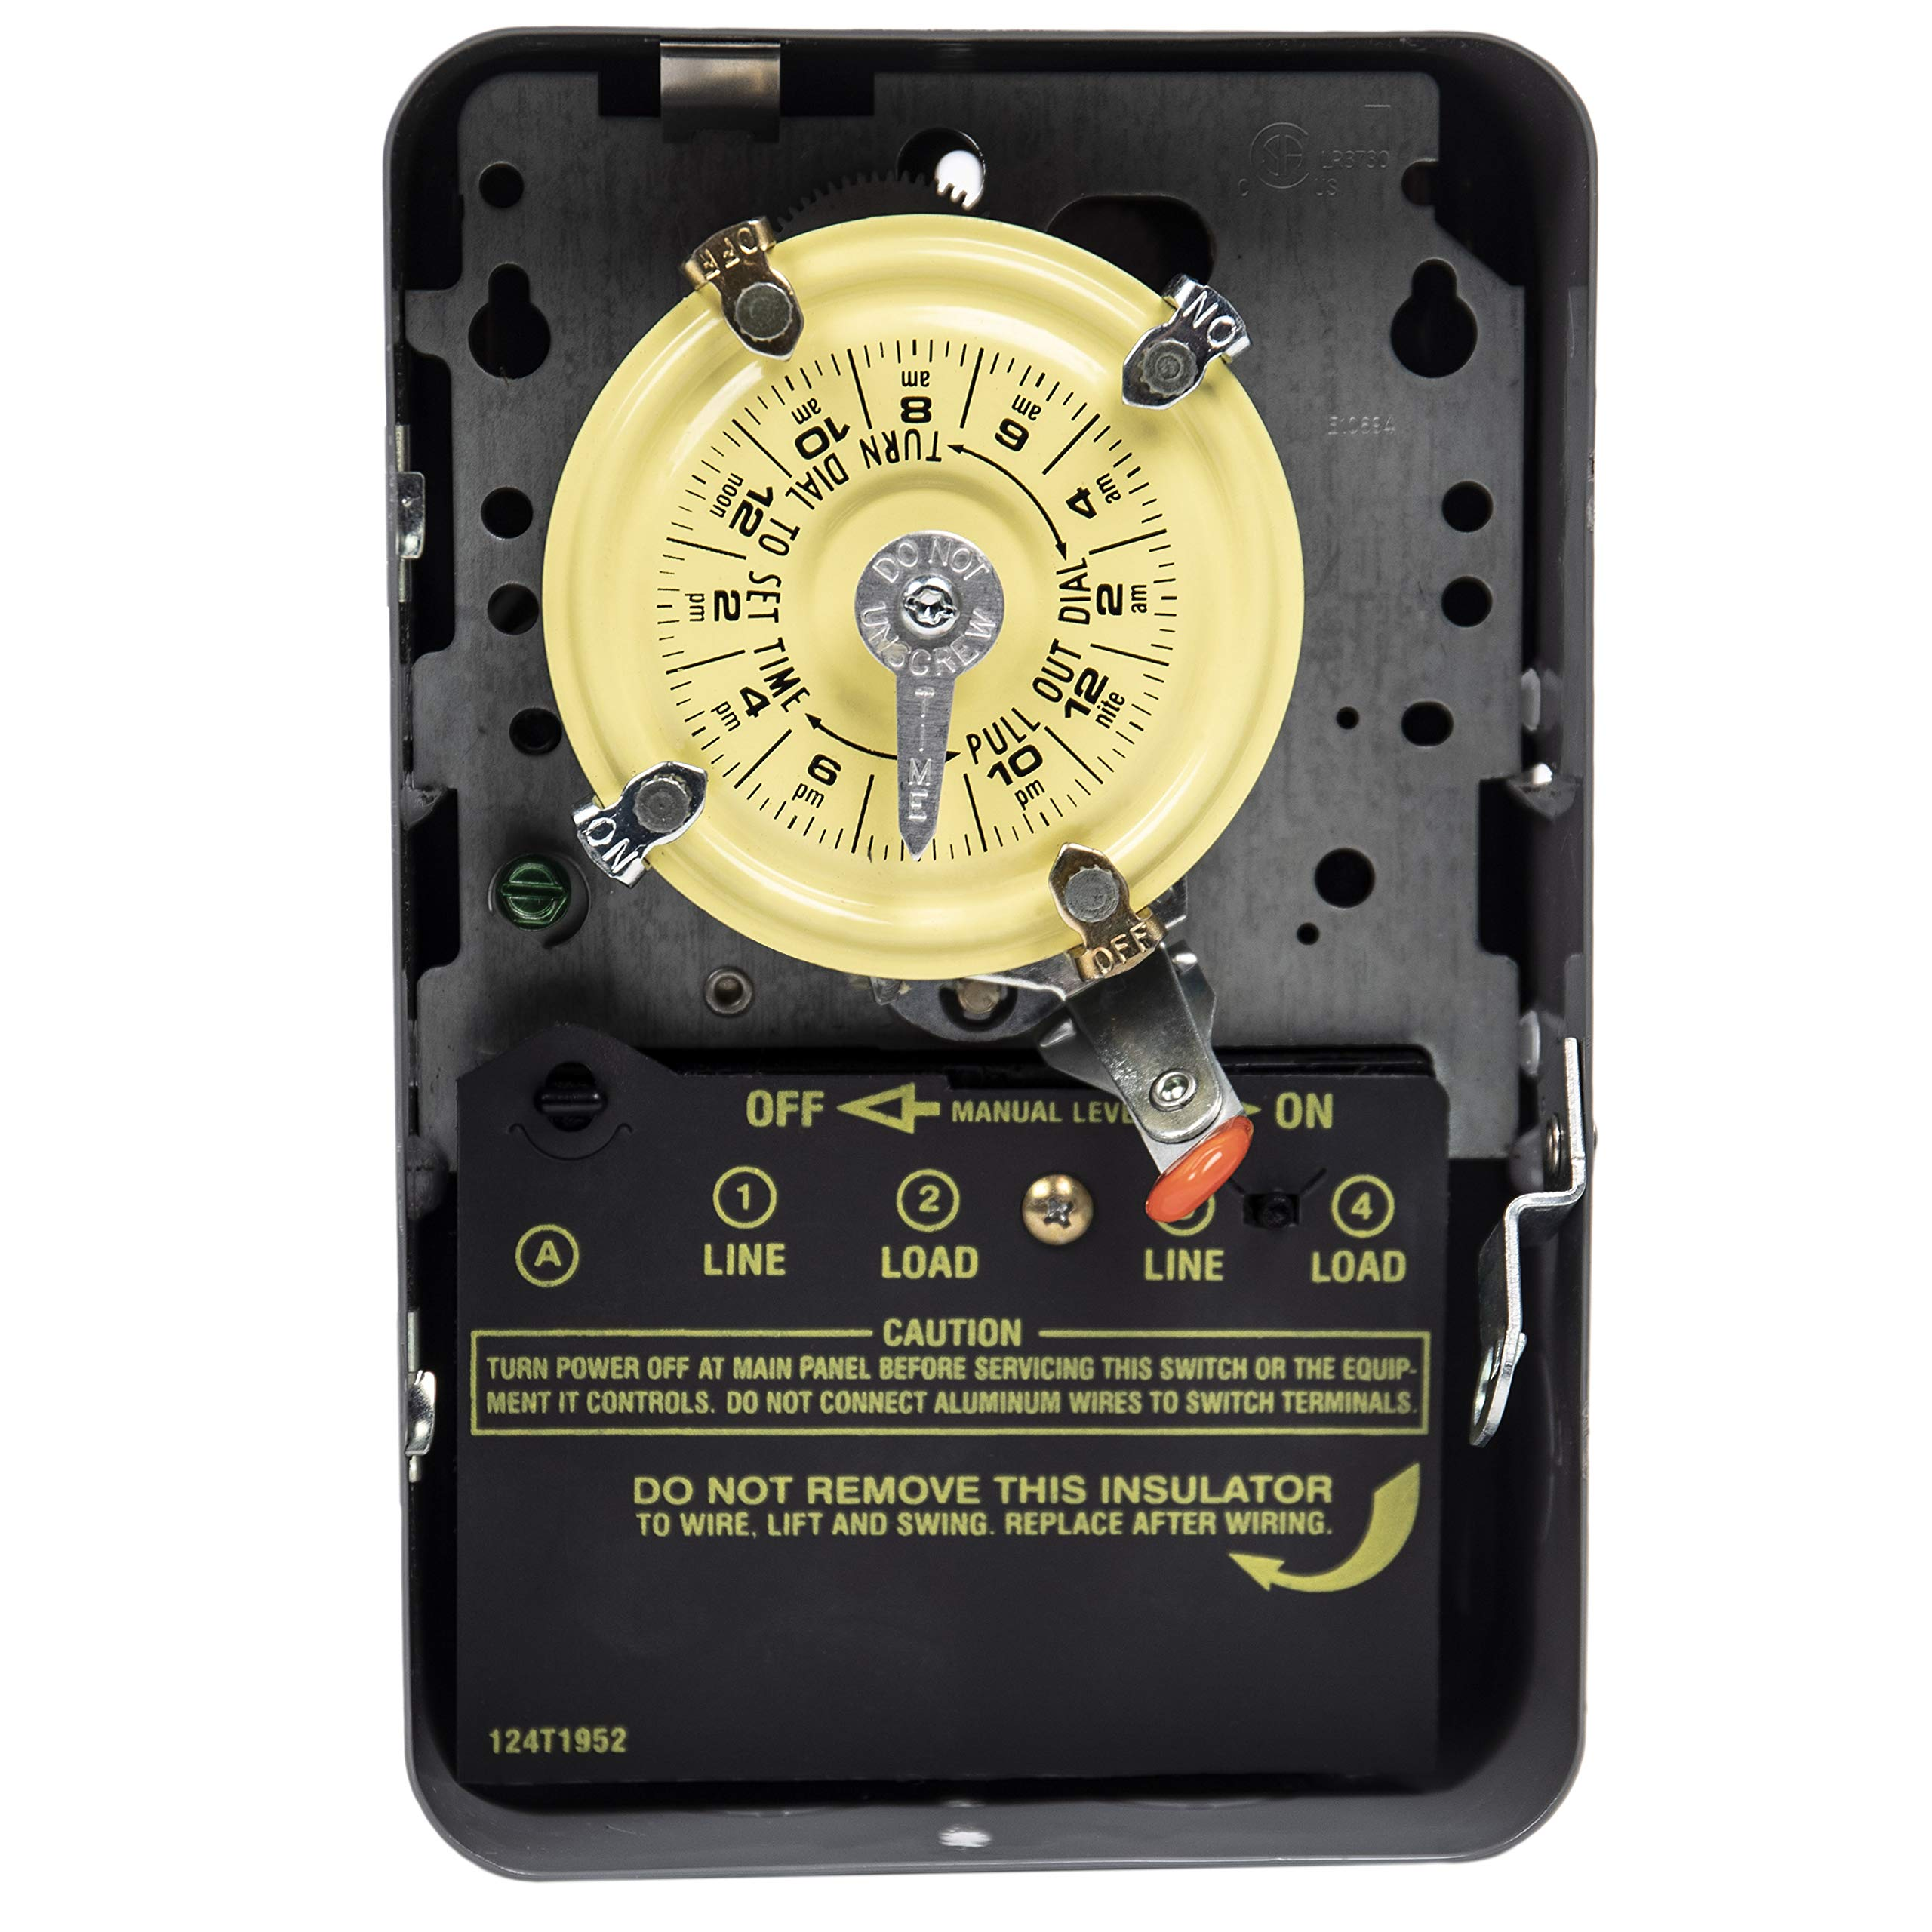 Best Rated in Wall Timer Switches & Helpful Customer Reviews ... on logic flow diagram, mechanically held lighting contactor diagram, contactor parts, contactor exploded view, generac transfer switch diagram, 6 prong toggle switch diagram, electrical contactor diagram, contactor switch, kitchen stoves and ovens diagram, push button start stop diagram, contactor coil, 3 position selector switch diagram, magnetic contactor diagram, single phase reversing contactor diagram, circuit diagram, contactor relay, abortion diagram, contactor operation diagram, carrier furnace parts diagram, reverse polarity relay diagram,